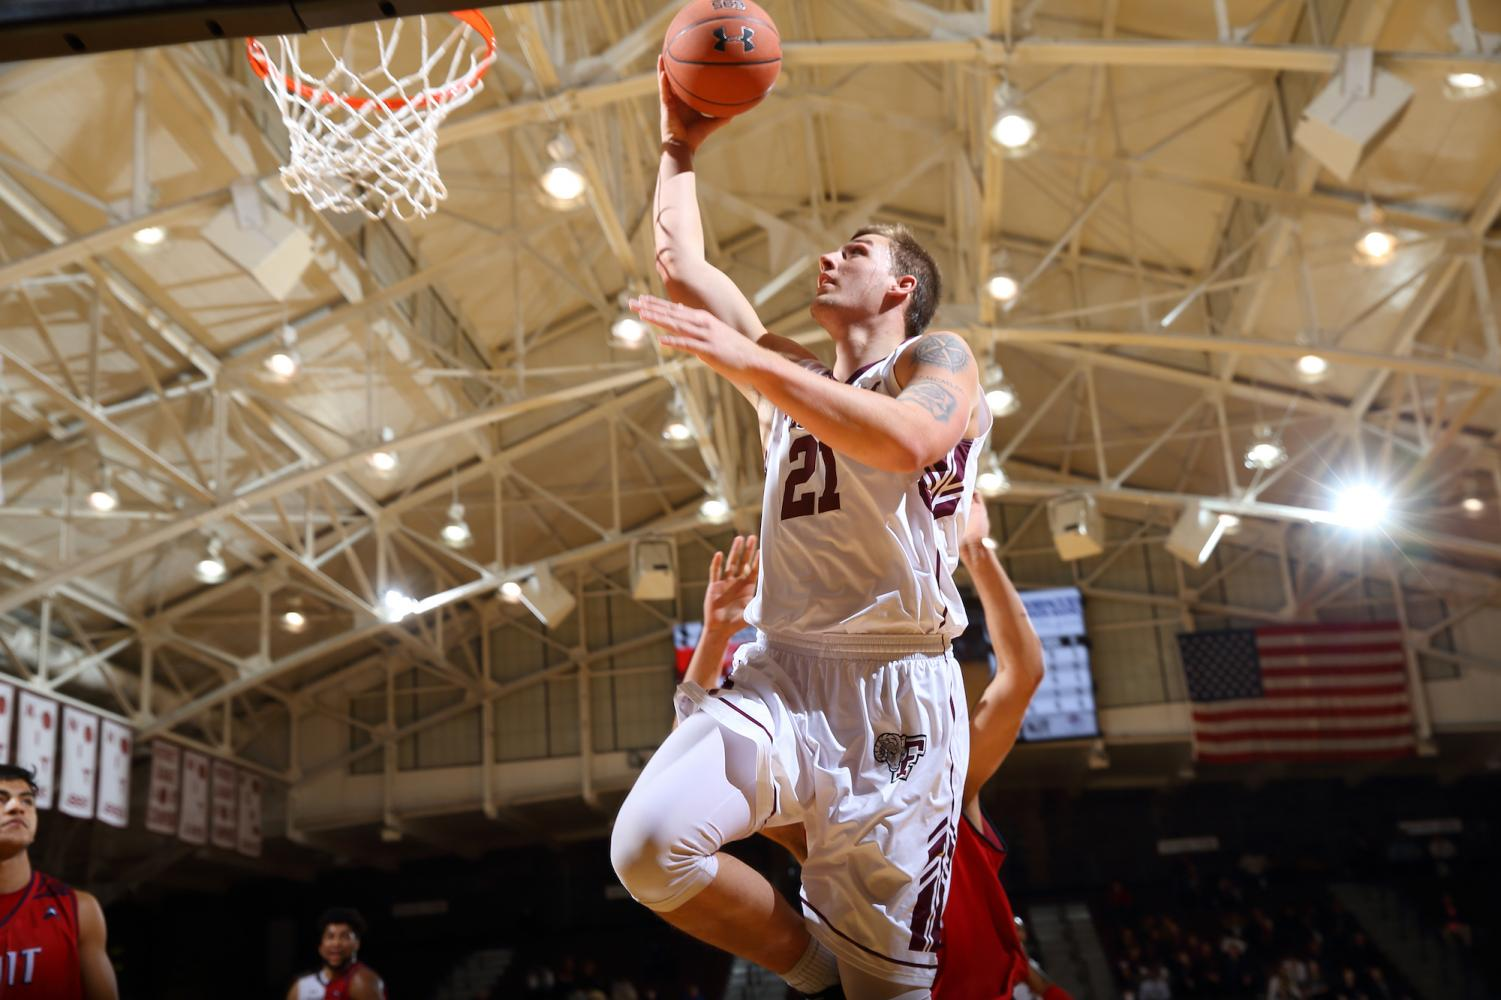 Fordham plays George Washington University in the first round of the Atlantic 10 Tournament without Forward Jesse Bunting.